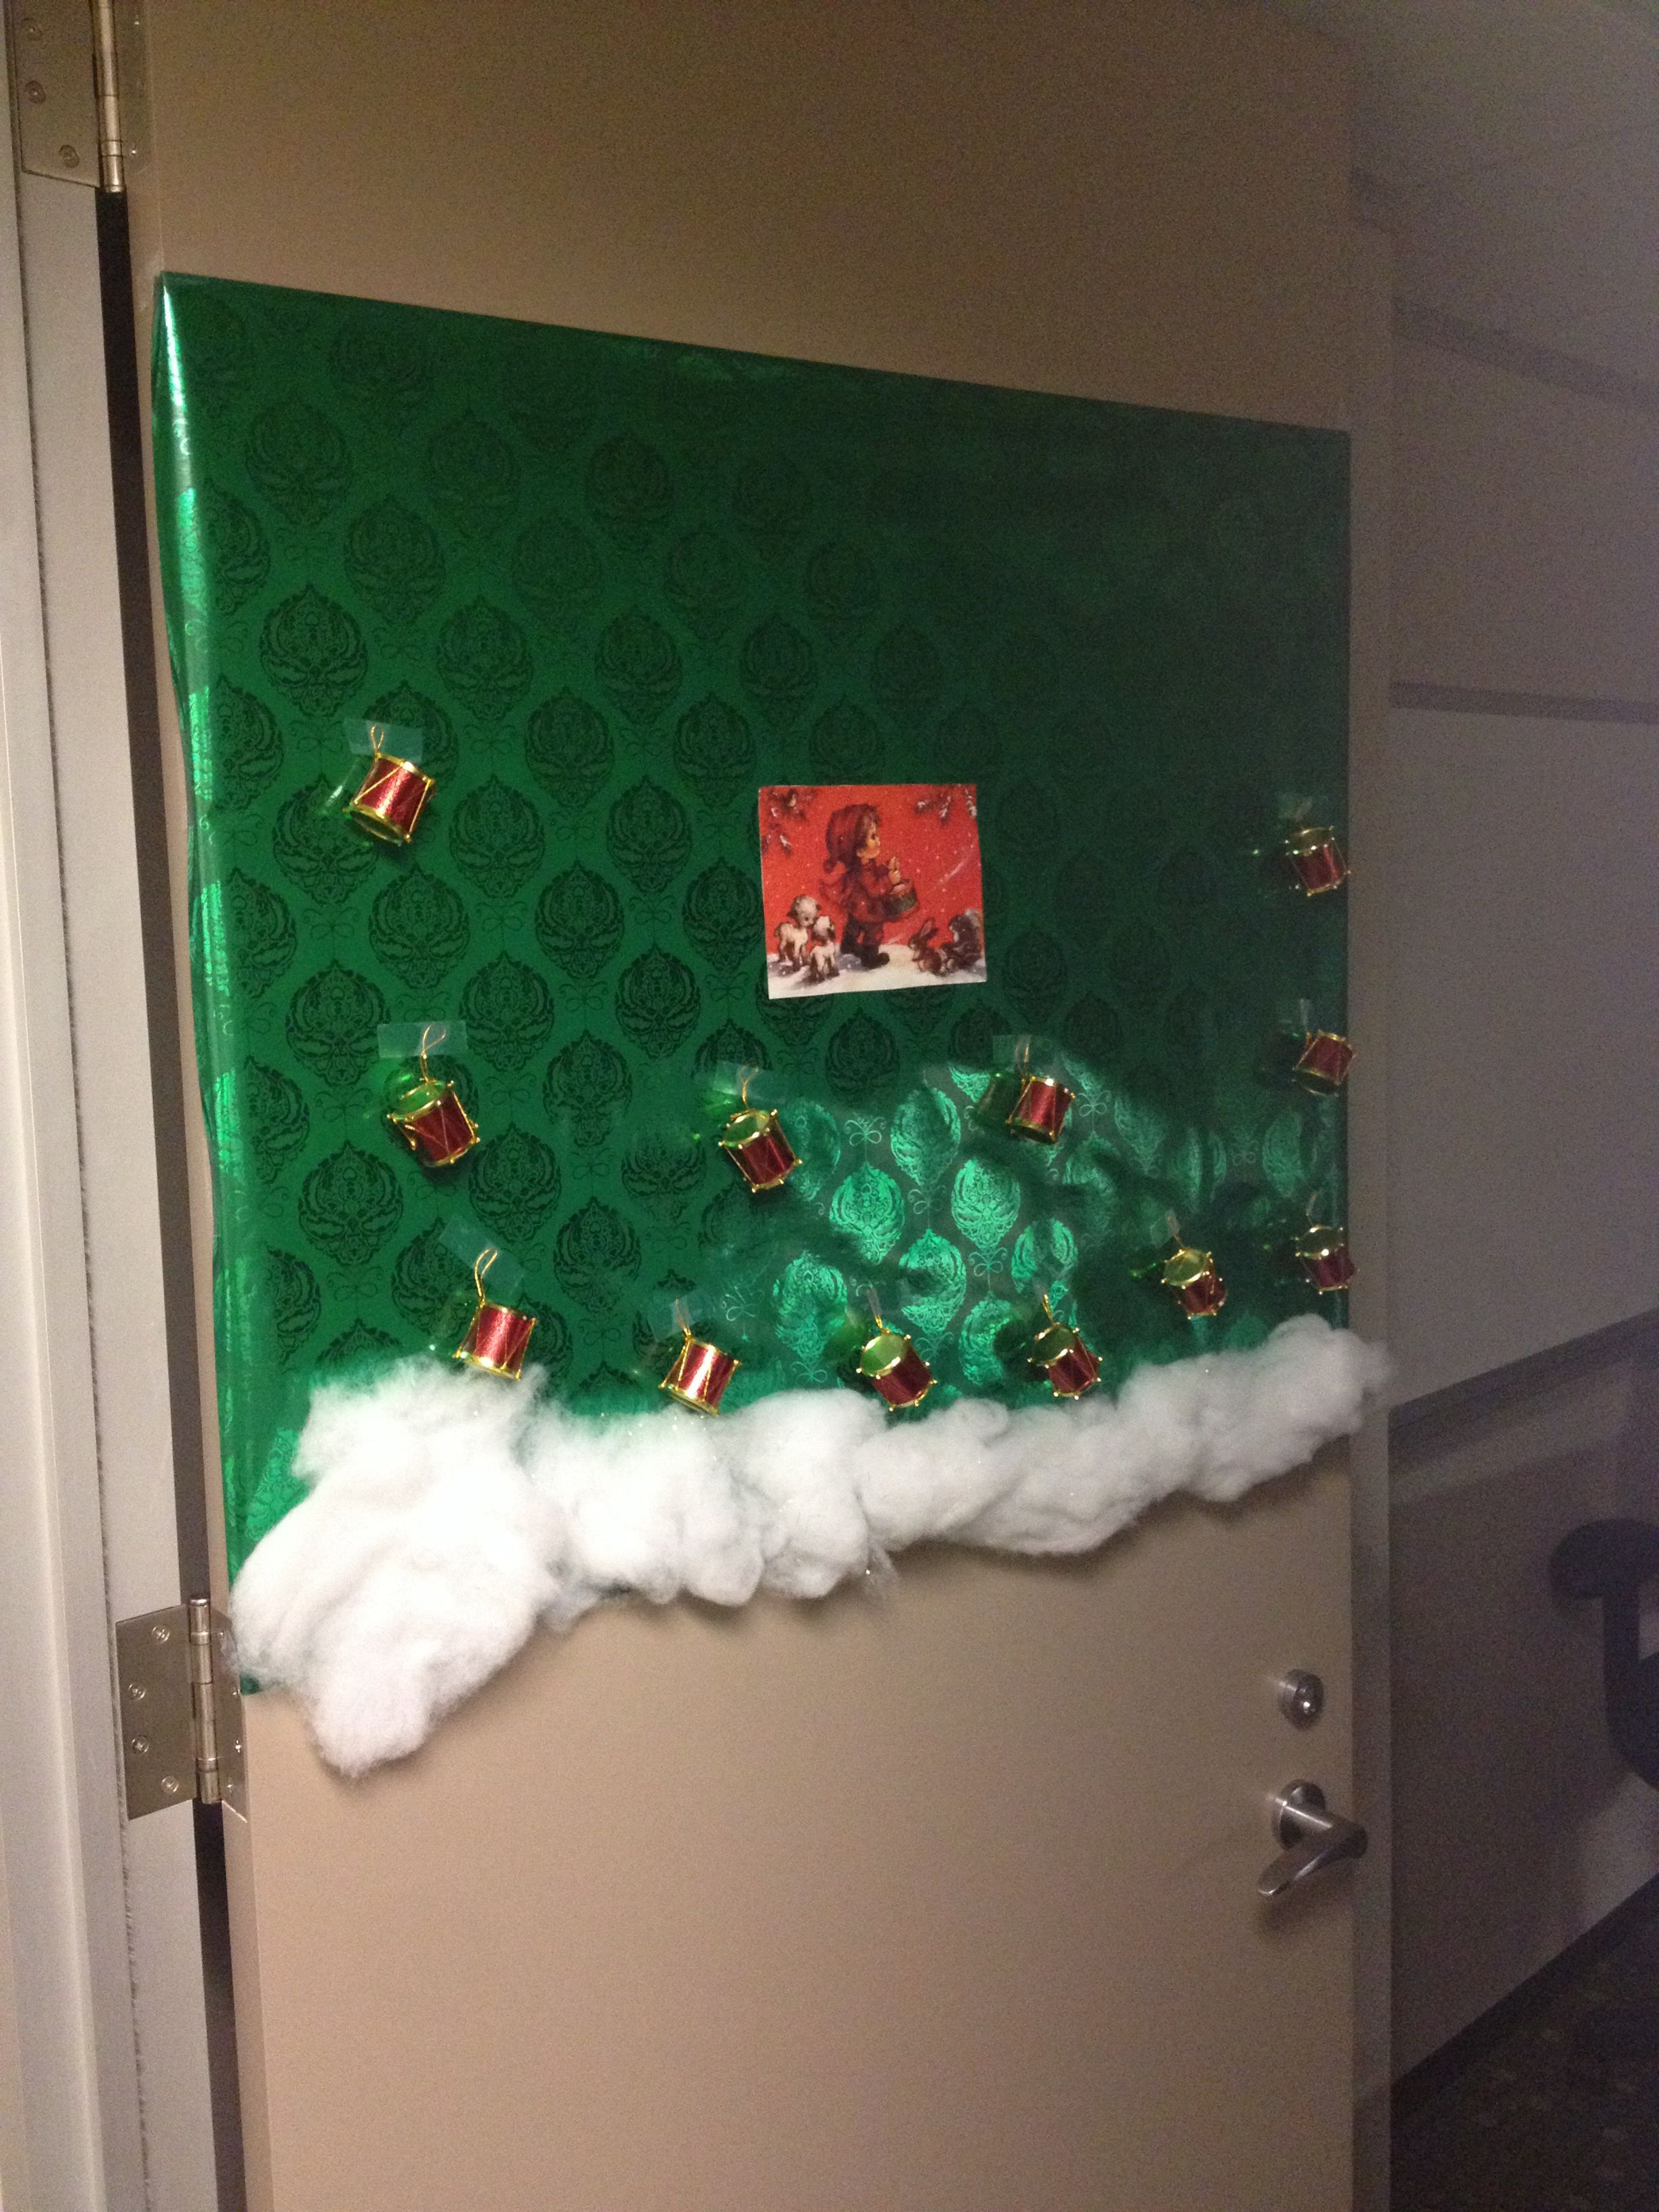 12 Days Of Christmas Door 12 Work Door Decorating Contest Diy Christmas Garland Christmas Decorations Door Decorating Contest